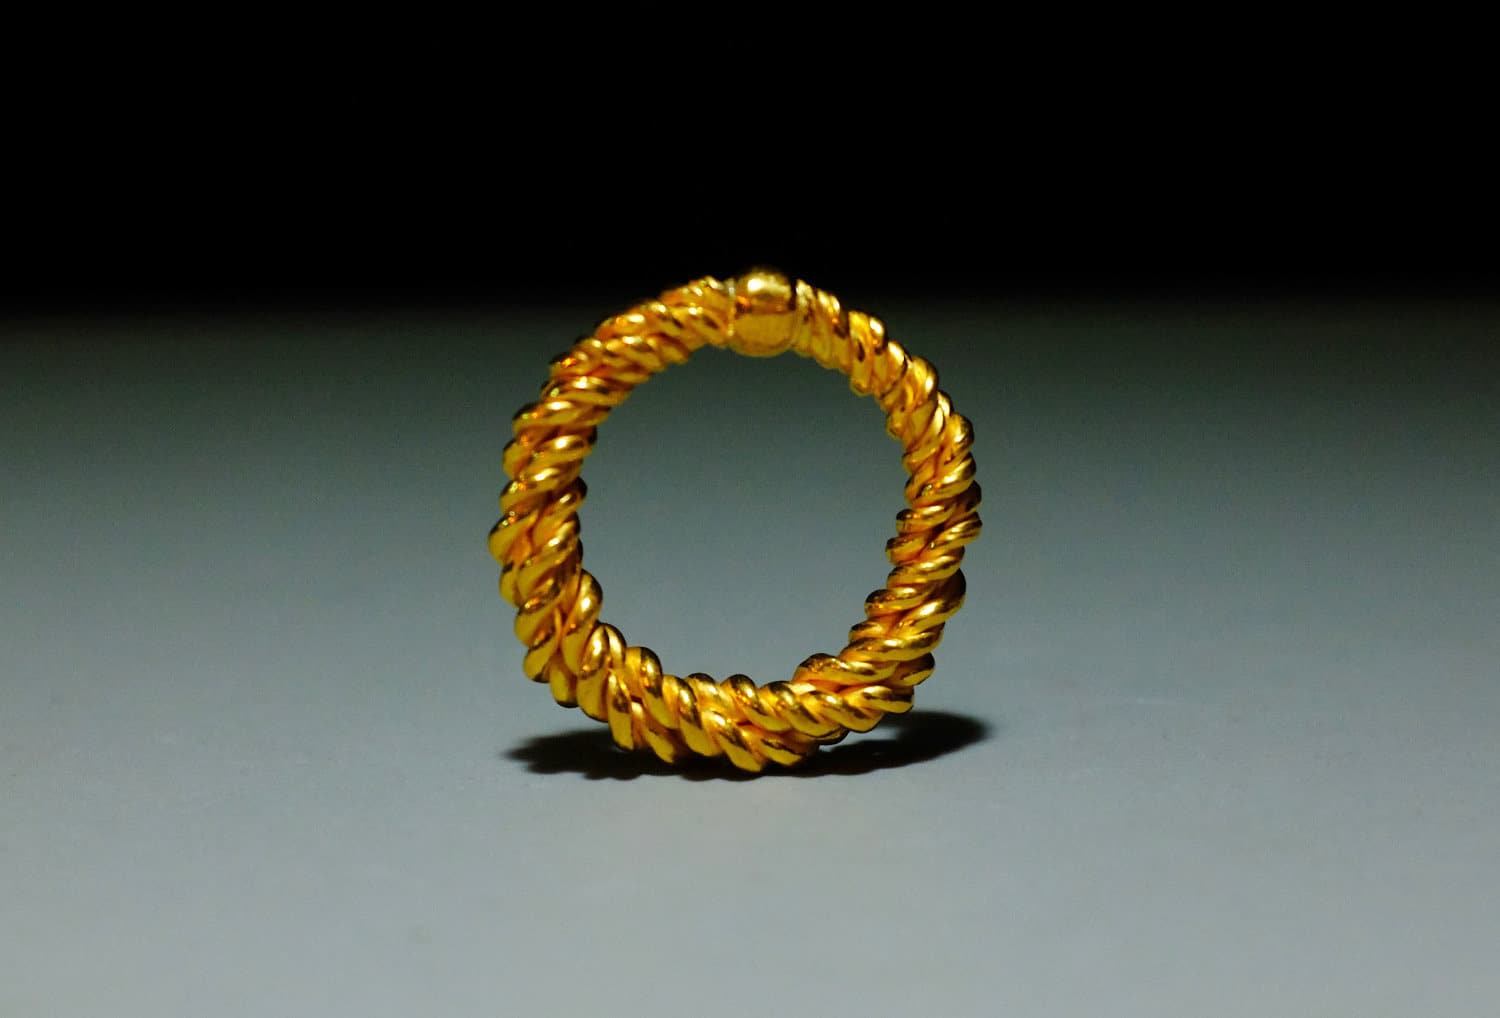 SIJS, gold twist rope ring, handmade 24k gold ring, handmade gold twist ring, solid gold twist ring, thick twisted rope ring, wide gold twist ring, custom gold ring singapore, custom jewellery singapore, bespoke jewellery singapore, 22k gold ring handmade, medieval style jewellery, ancient roman style jewelry